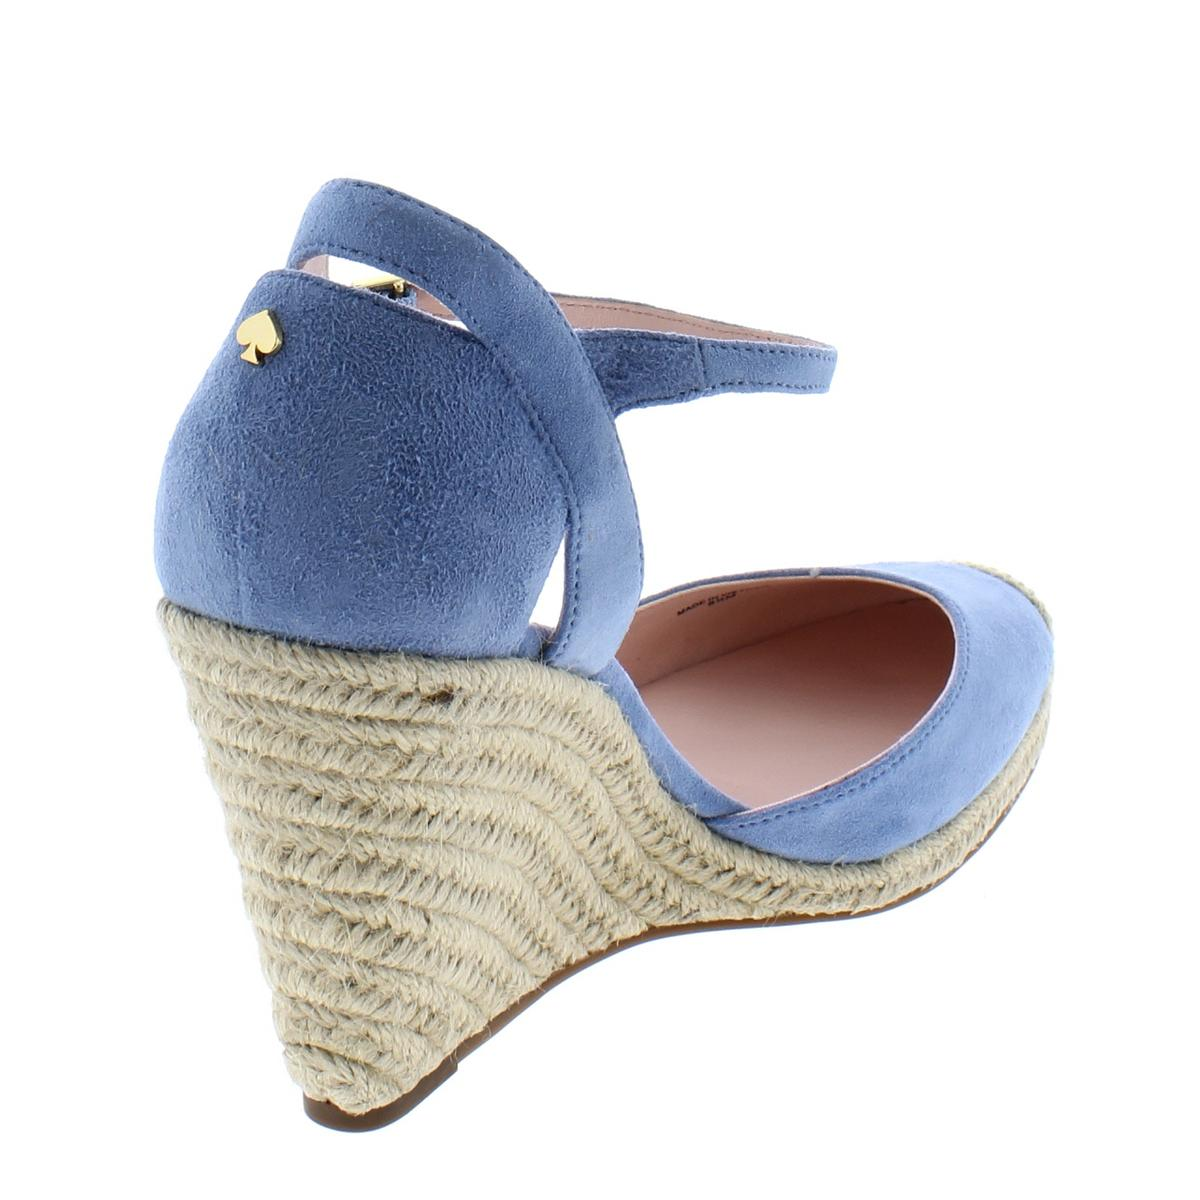 Kate-Spade-Womens-Giovanna-Suede-Espadrille-Dressy-Wedge-Heels-Shoes-BHFO-7983 thumbnail 4